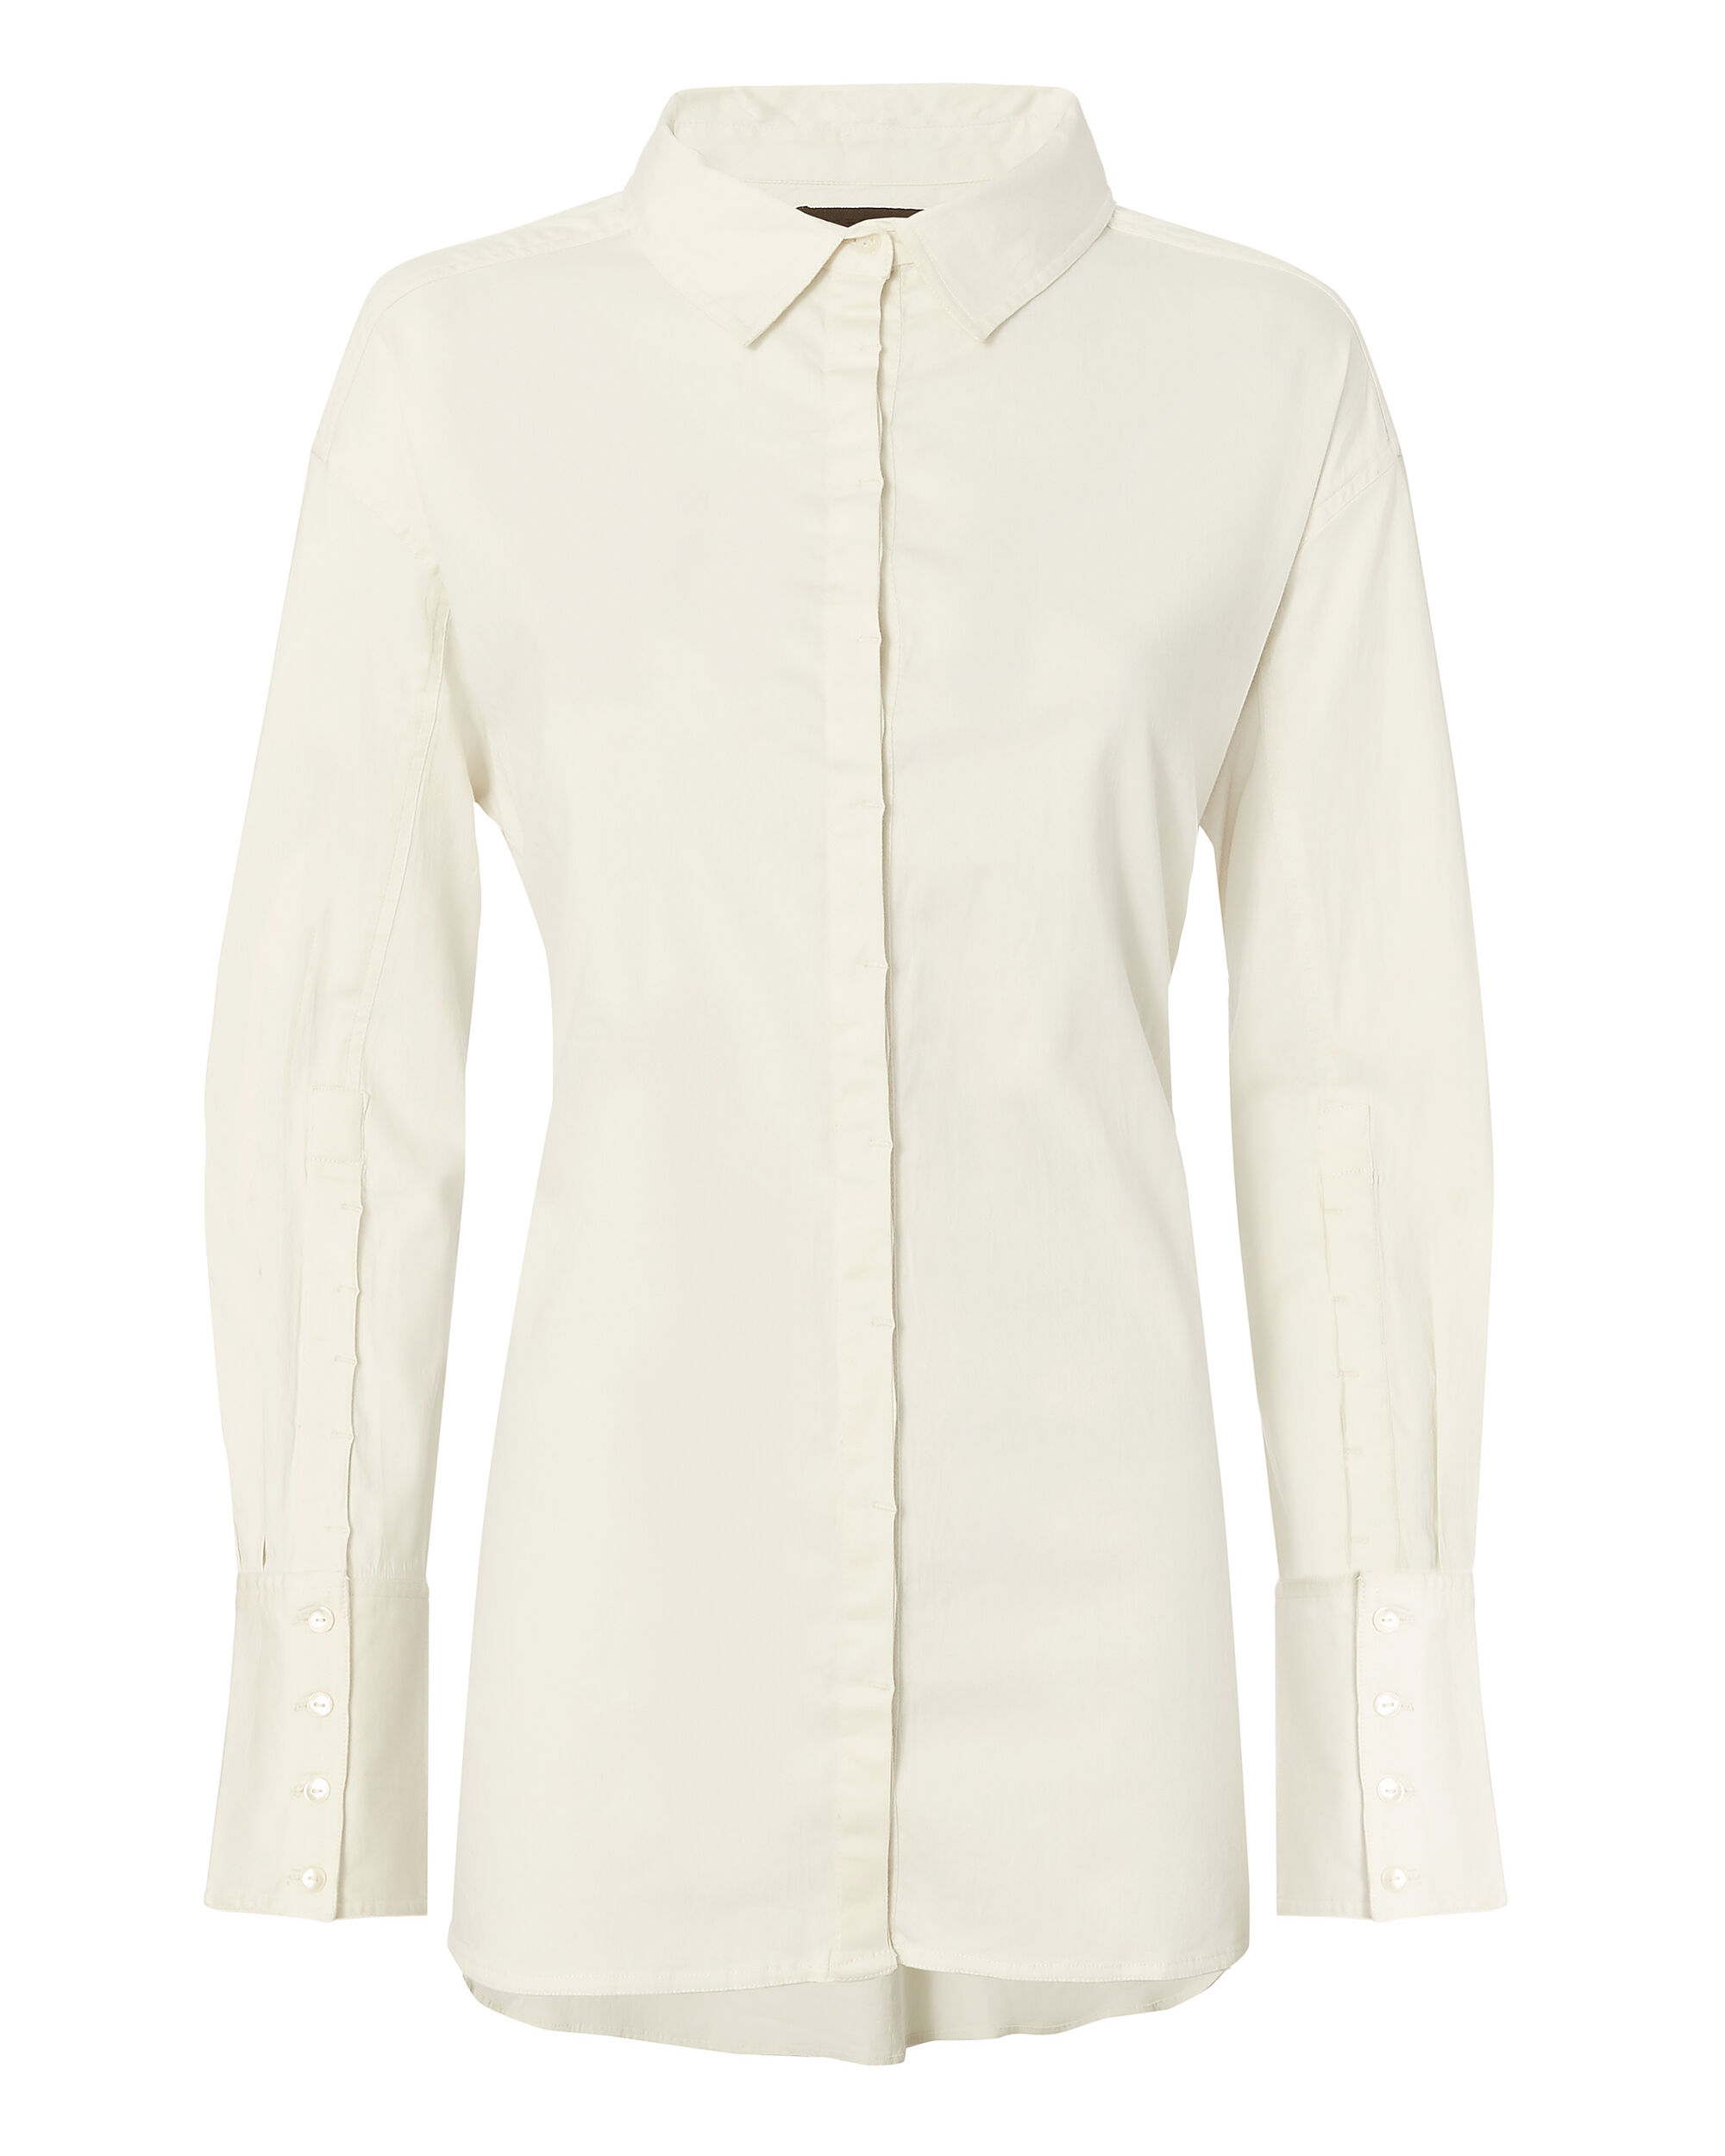 Hook White Button Down Shirt, IVORY, hi-res